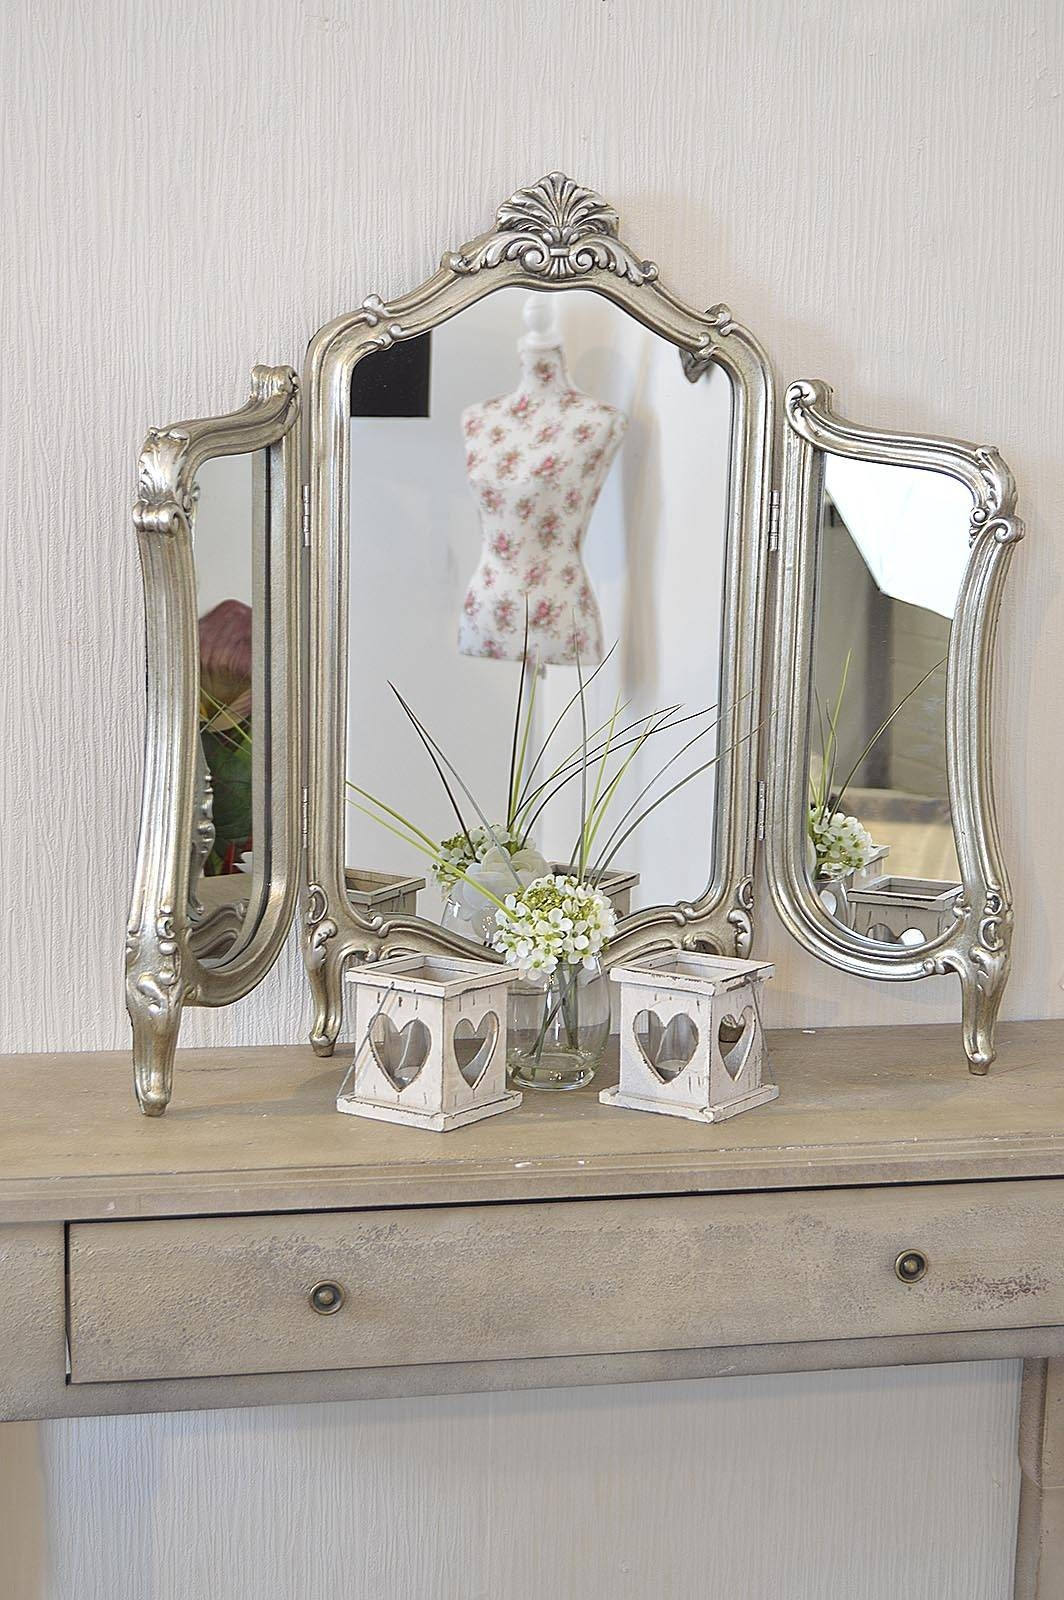 Stunning Antique Design Free Standing Dressing Table Mirror – M315 Within Free Standing Dressing Table Mirrors (View 4 of 15)